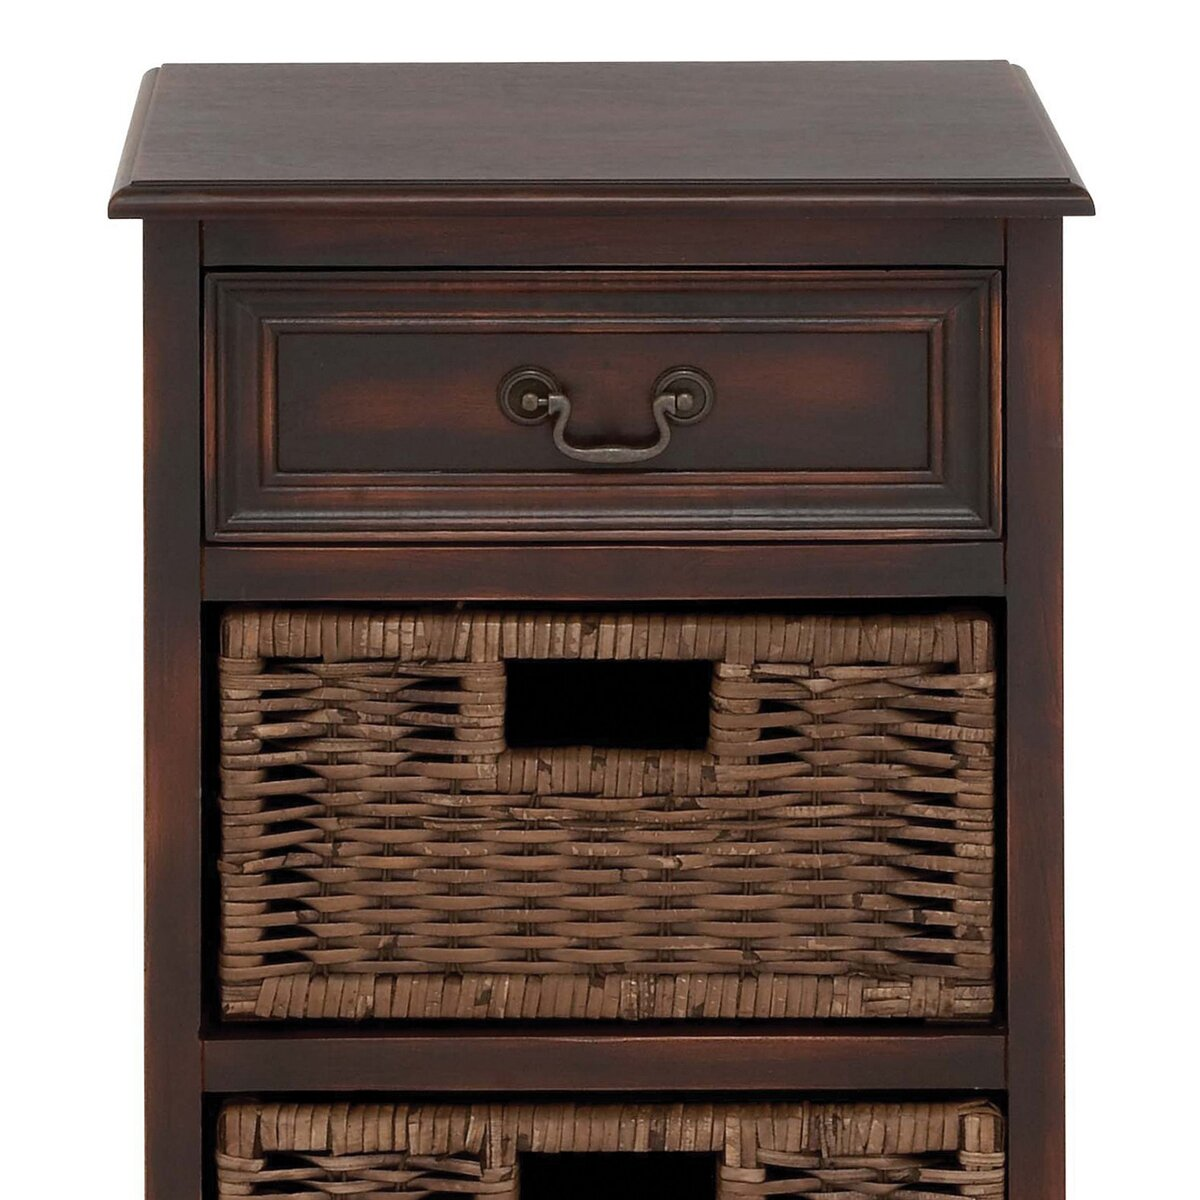 Ec world imports urban designs 3 drawer nightstand reviews wayfair Home design imports furniture